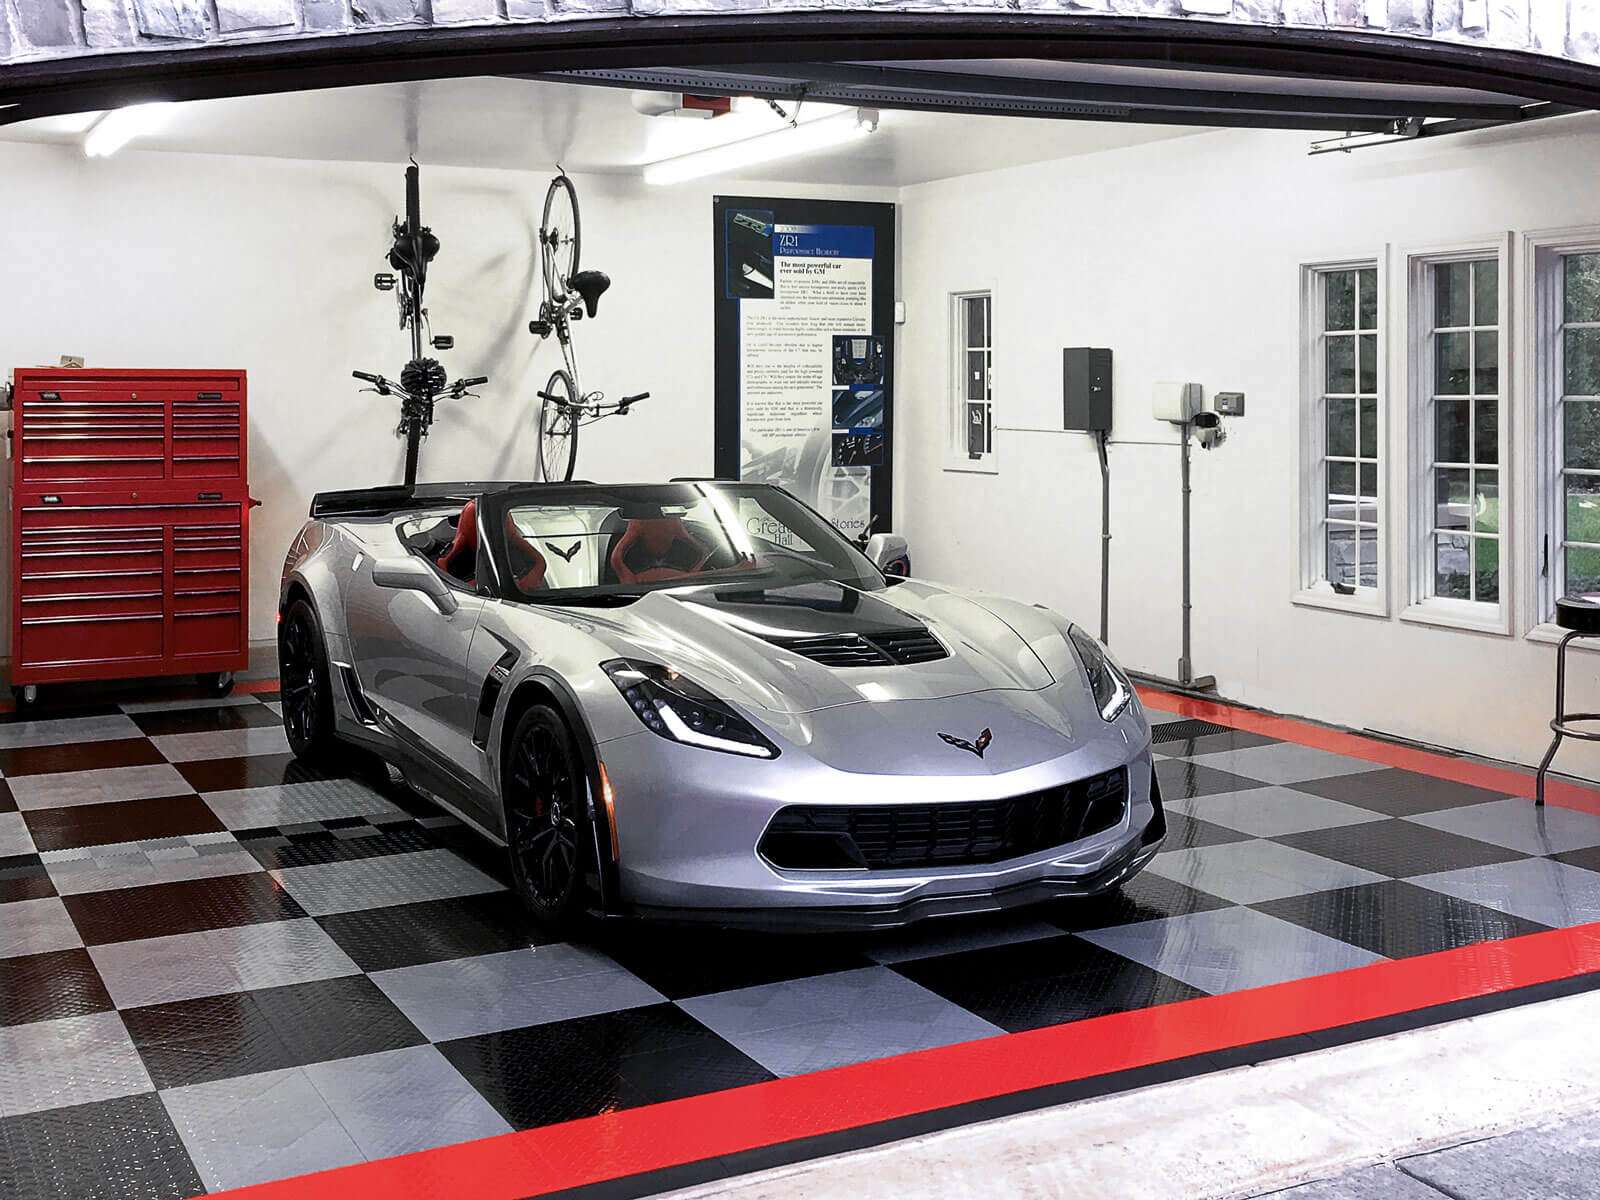 Corvette parked on RaceDeck Diamond with TuffShield flooring with edging in this home garage.